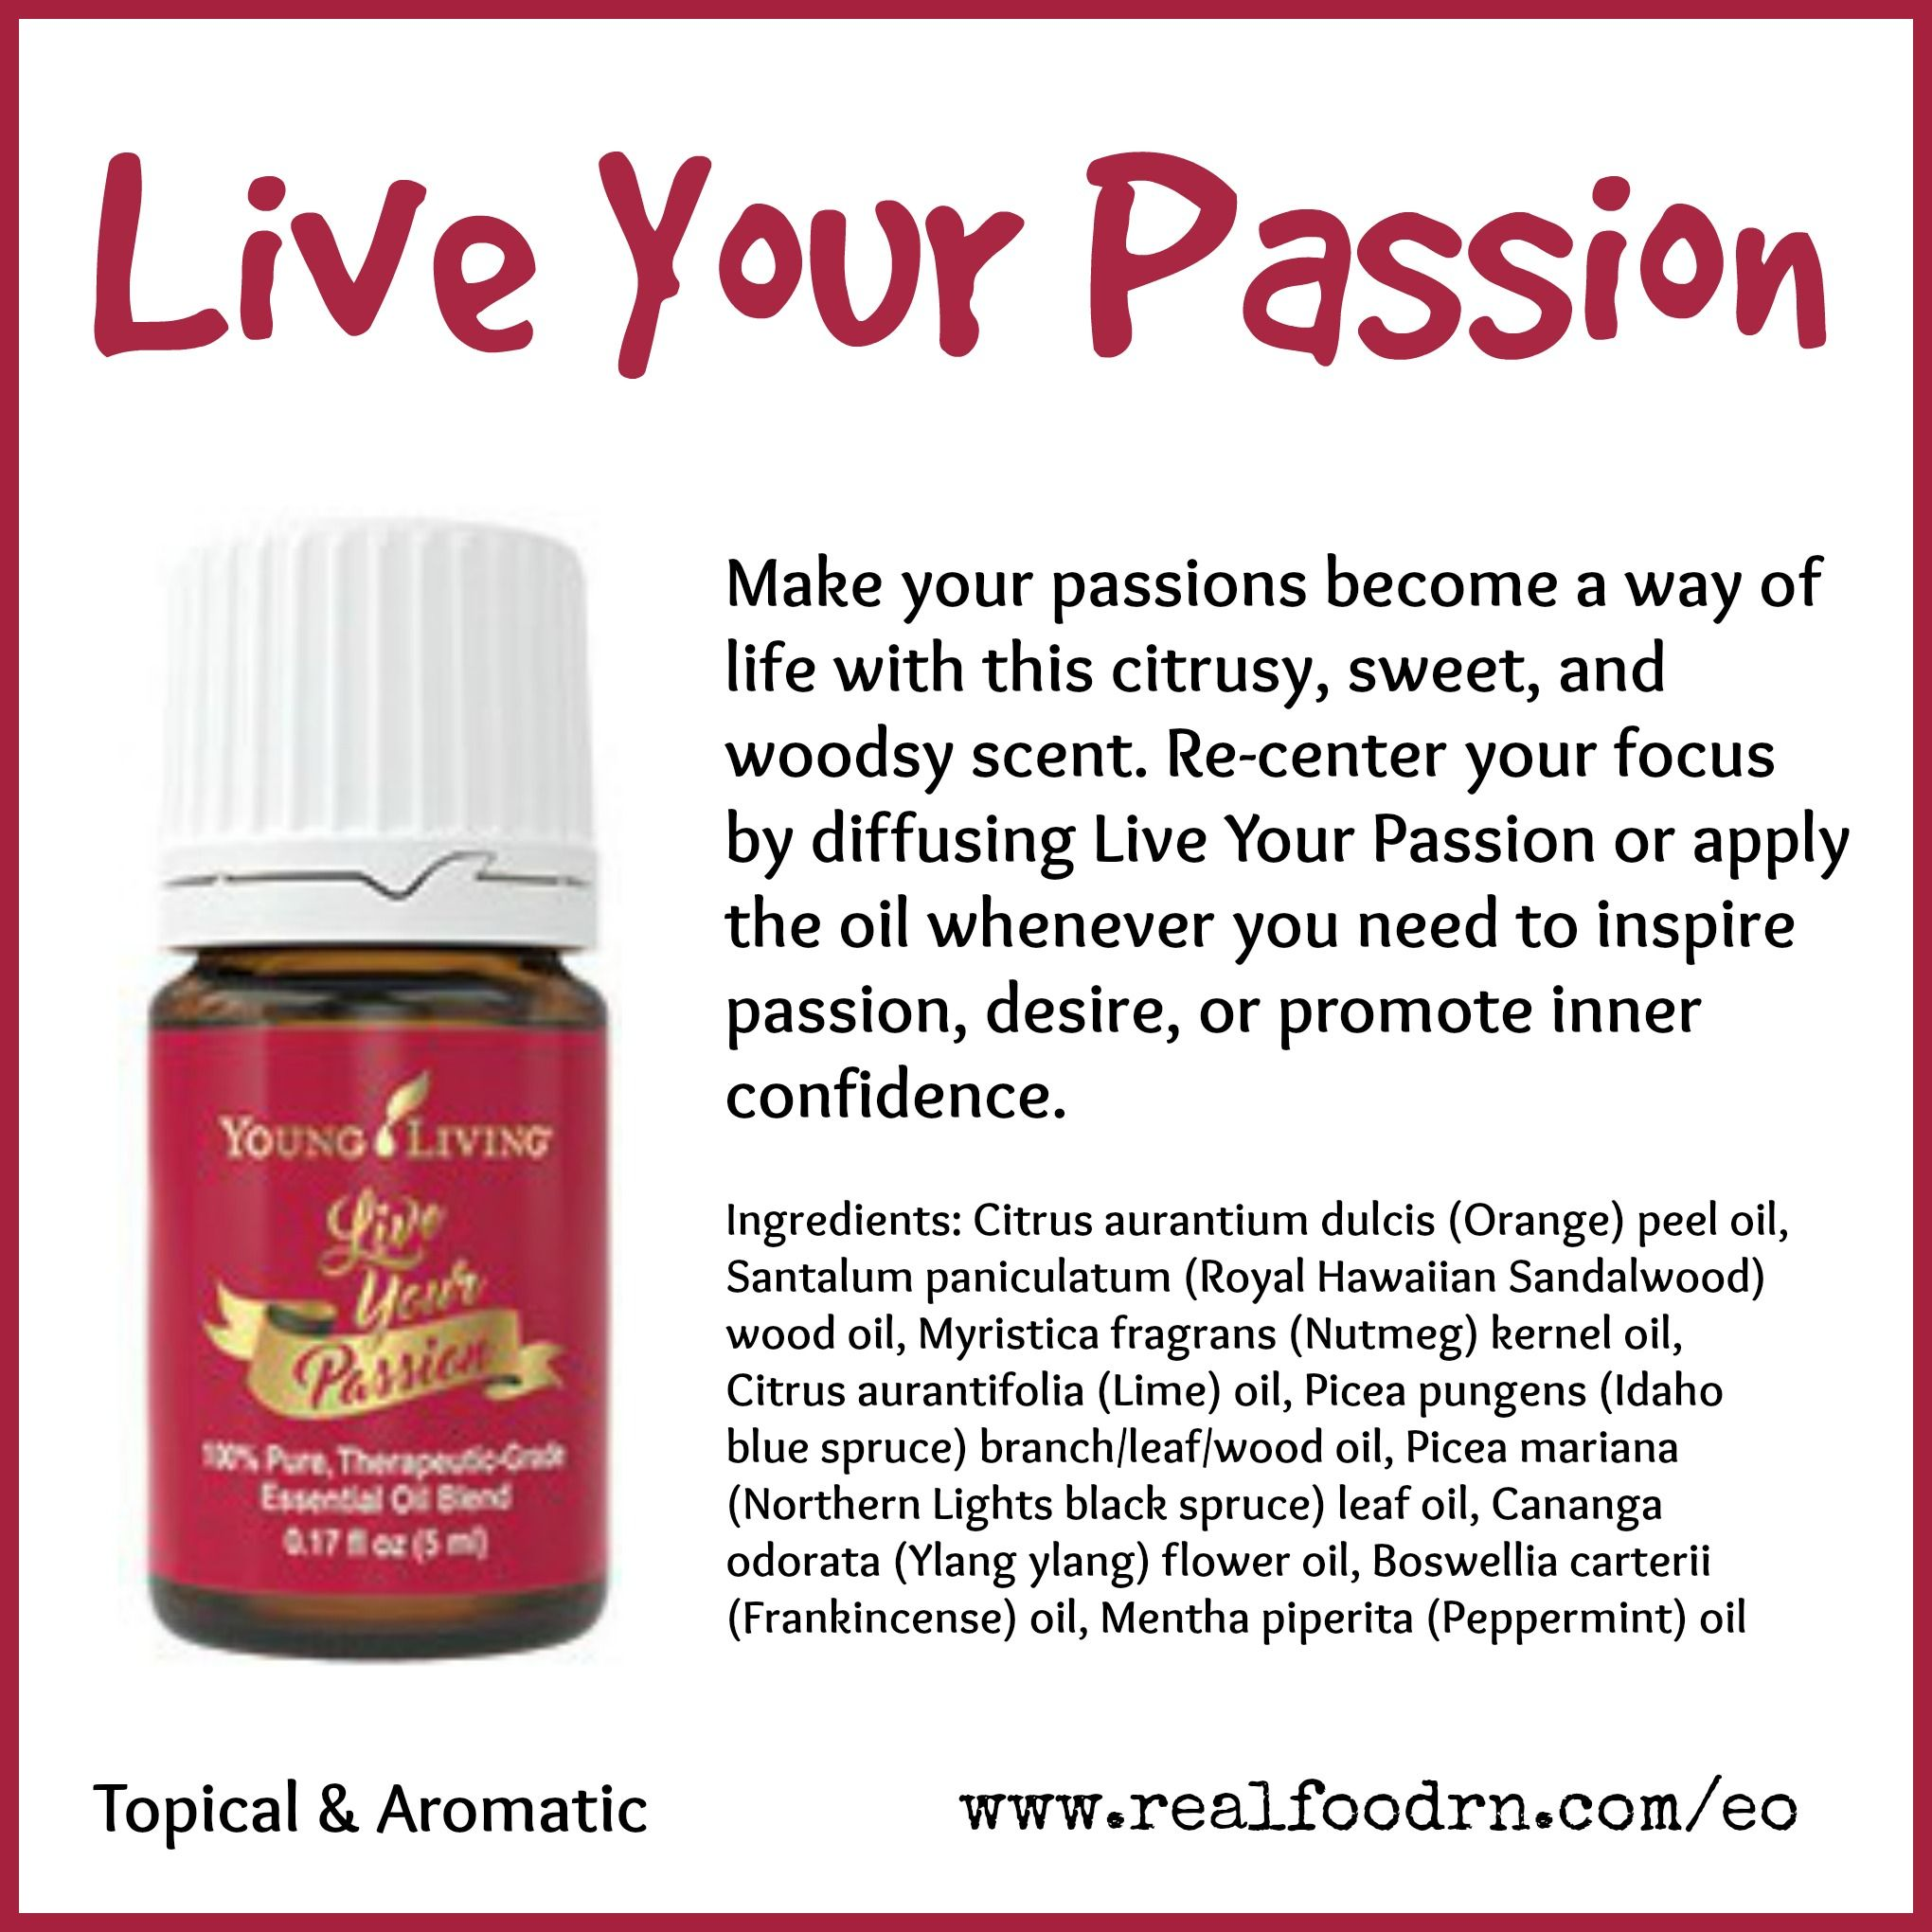 Live Your Passion Essential Oil Inspire Your Passion Desire Or Promote Inner Confidenc Passion Essential Oils My Essential Oils Essential Oil Diffuser Blends